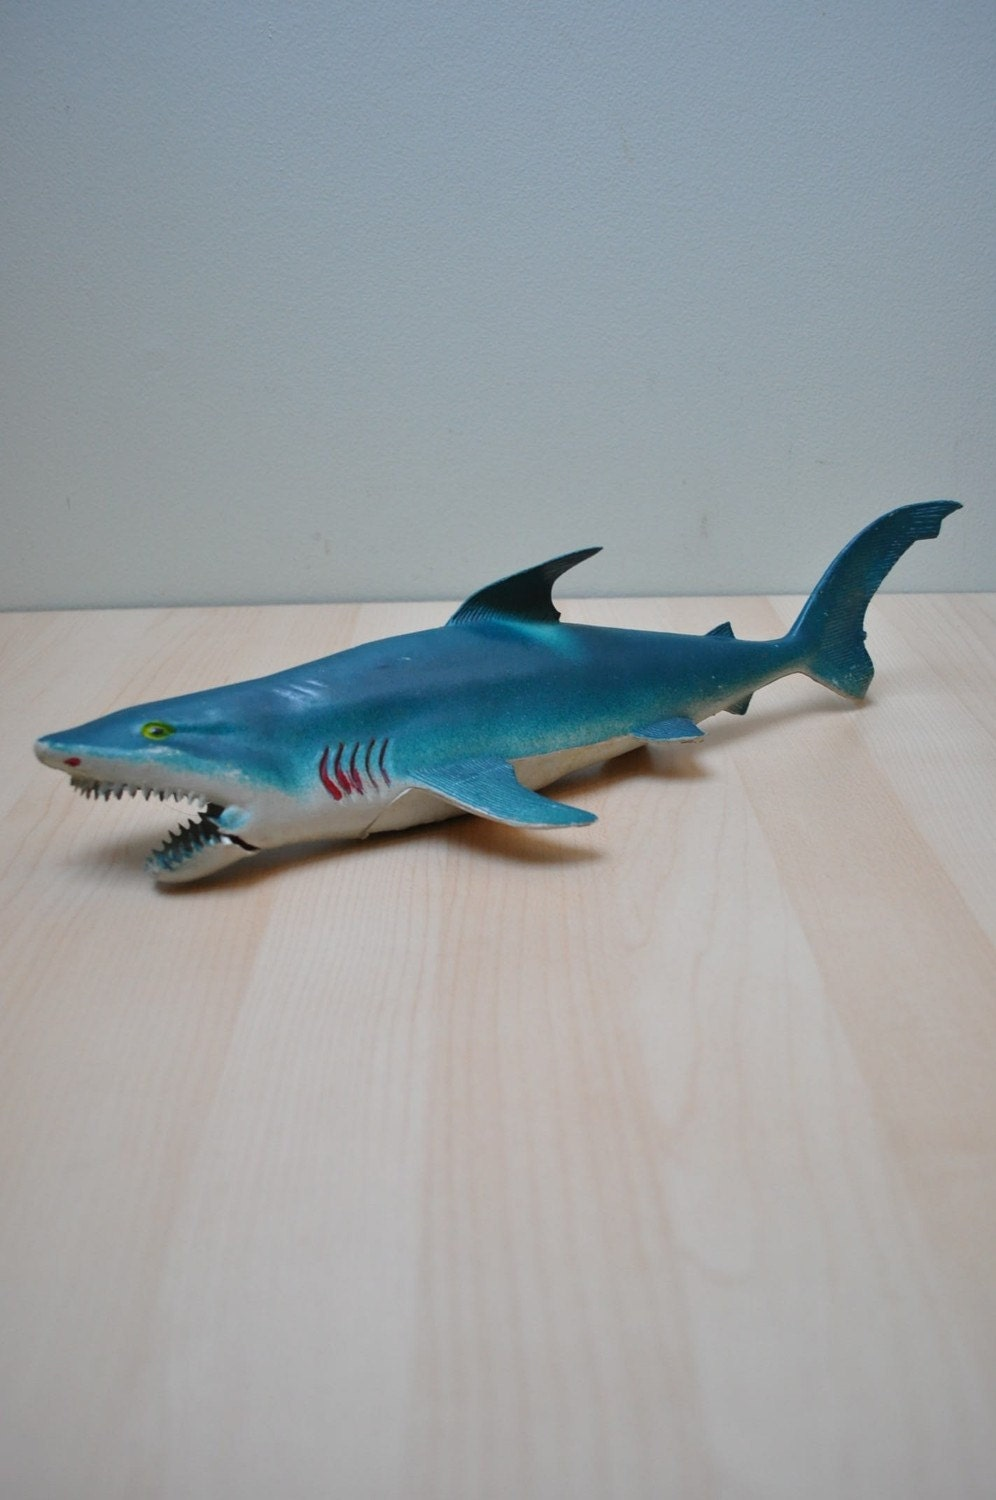 Shark Ship Toy : Rubber shark toy